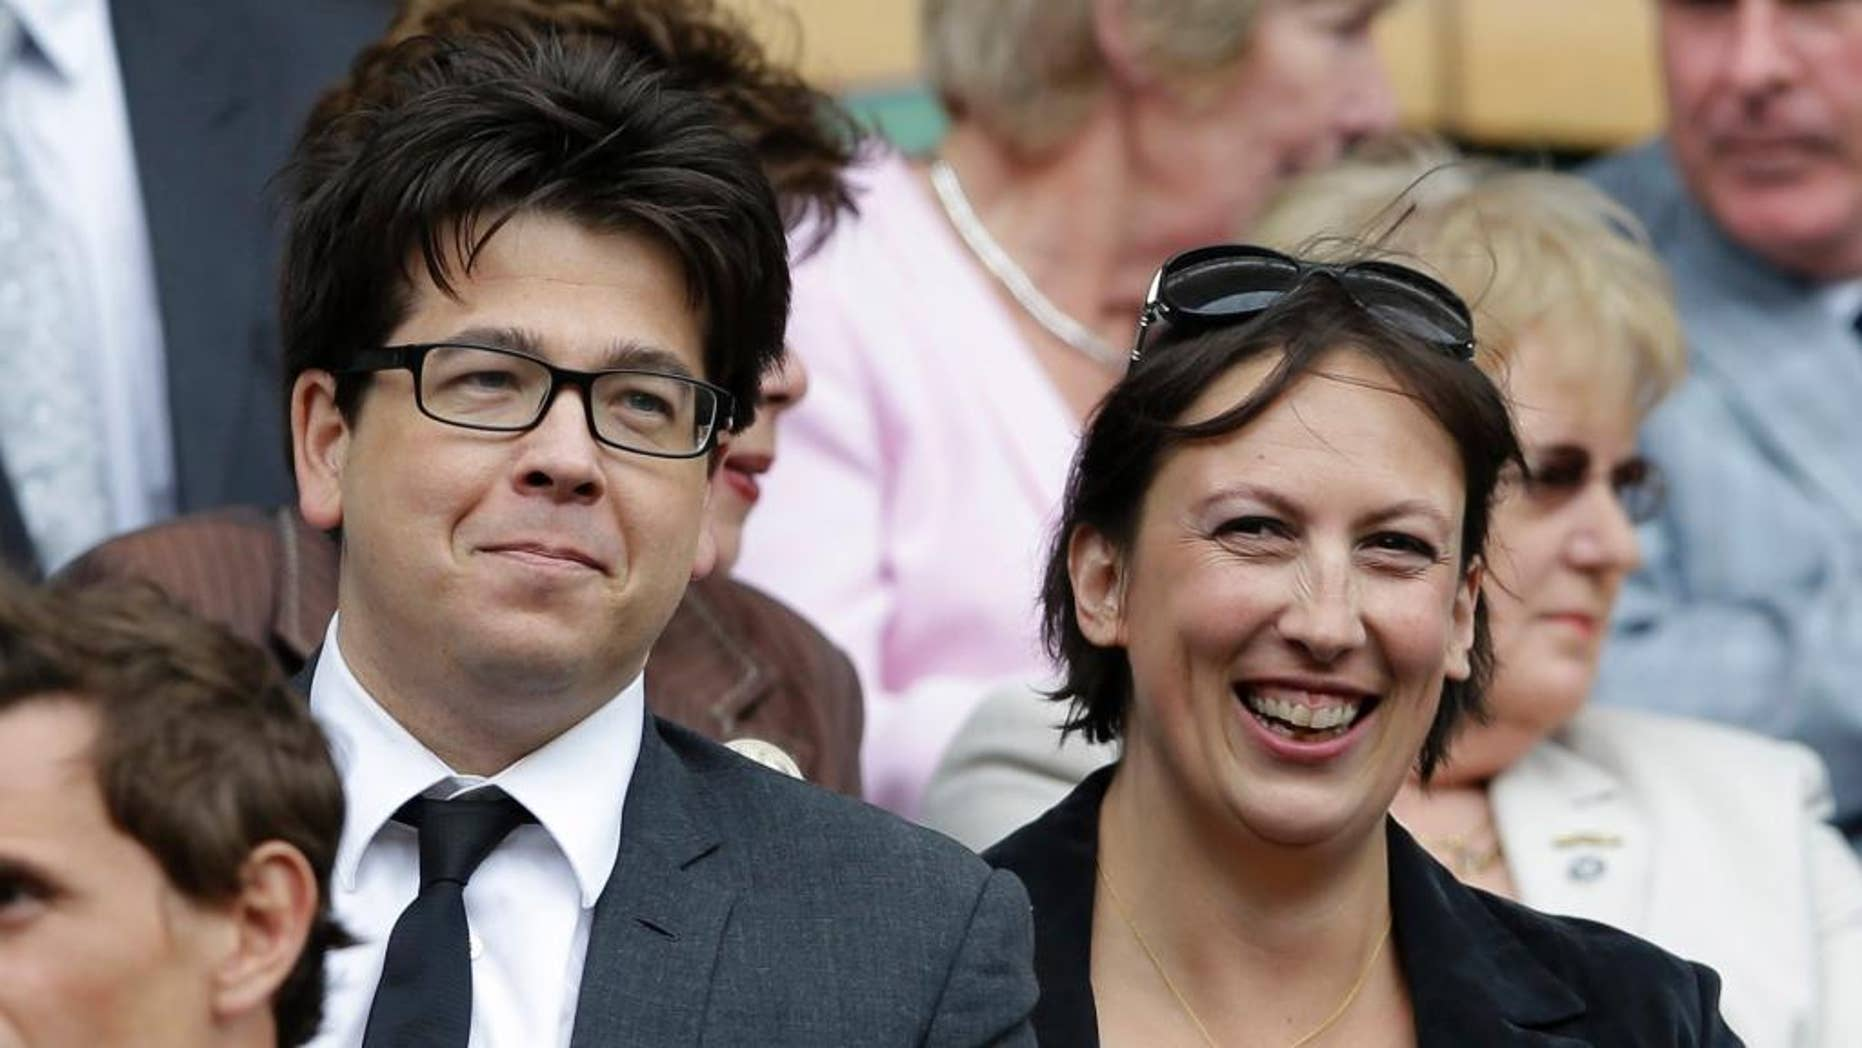 """FILE - This is a Saturday, July 7, 2012  file photo of British comedian Michael McIntyre, left, and comedian Miranda Hart, as they watch Serena Williams of the United States face Agnieszka Radwanska of Poland in the women's final match at the All England Lawn Tennis Championships at Wimbledon, England.  An image of the top of Micheal McIntyre's  head has Britons debating the decline of privacy in an age of surveillance. On Wednesday July 15, 2015 the National Police Air Service, which operates camera-equipped helicopters, tweeted an image of a man with a mop of dark hair, asking if people could recognize """"a certain energetic funny man."""" (AP Photo/Kirsty Wigglesworth, File)"""